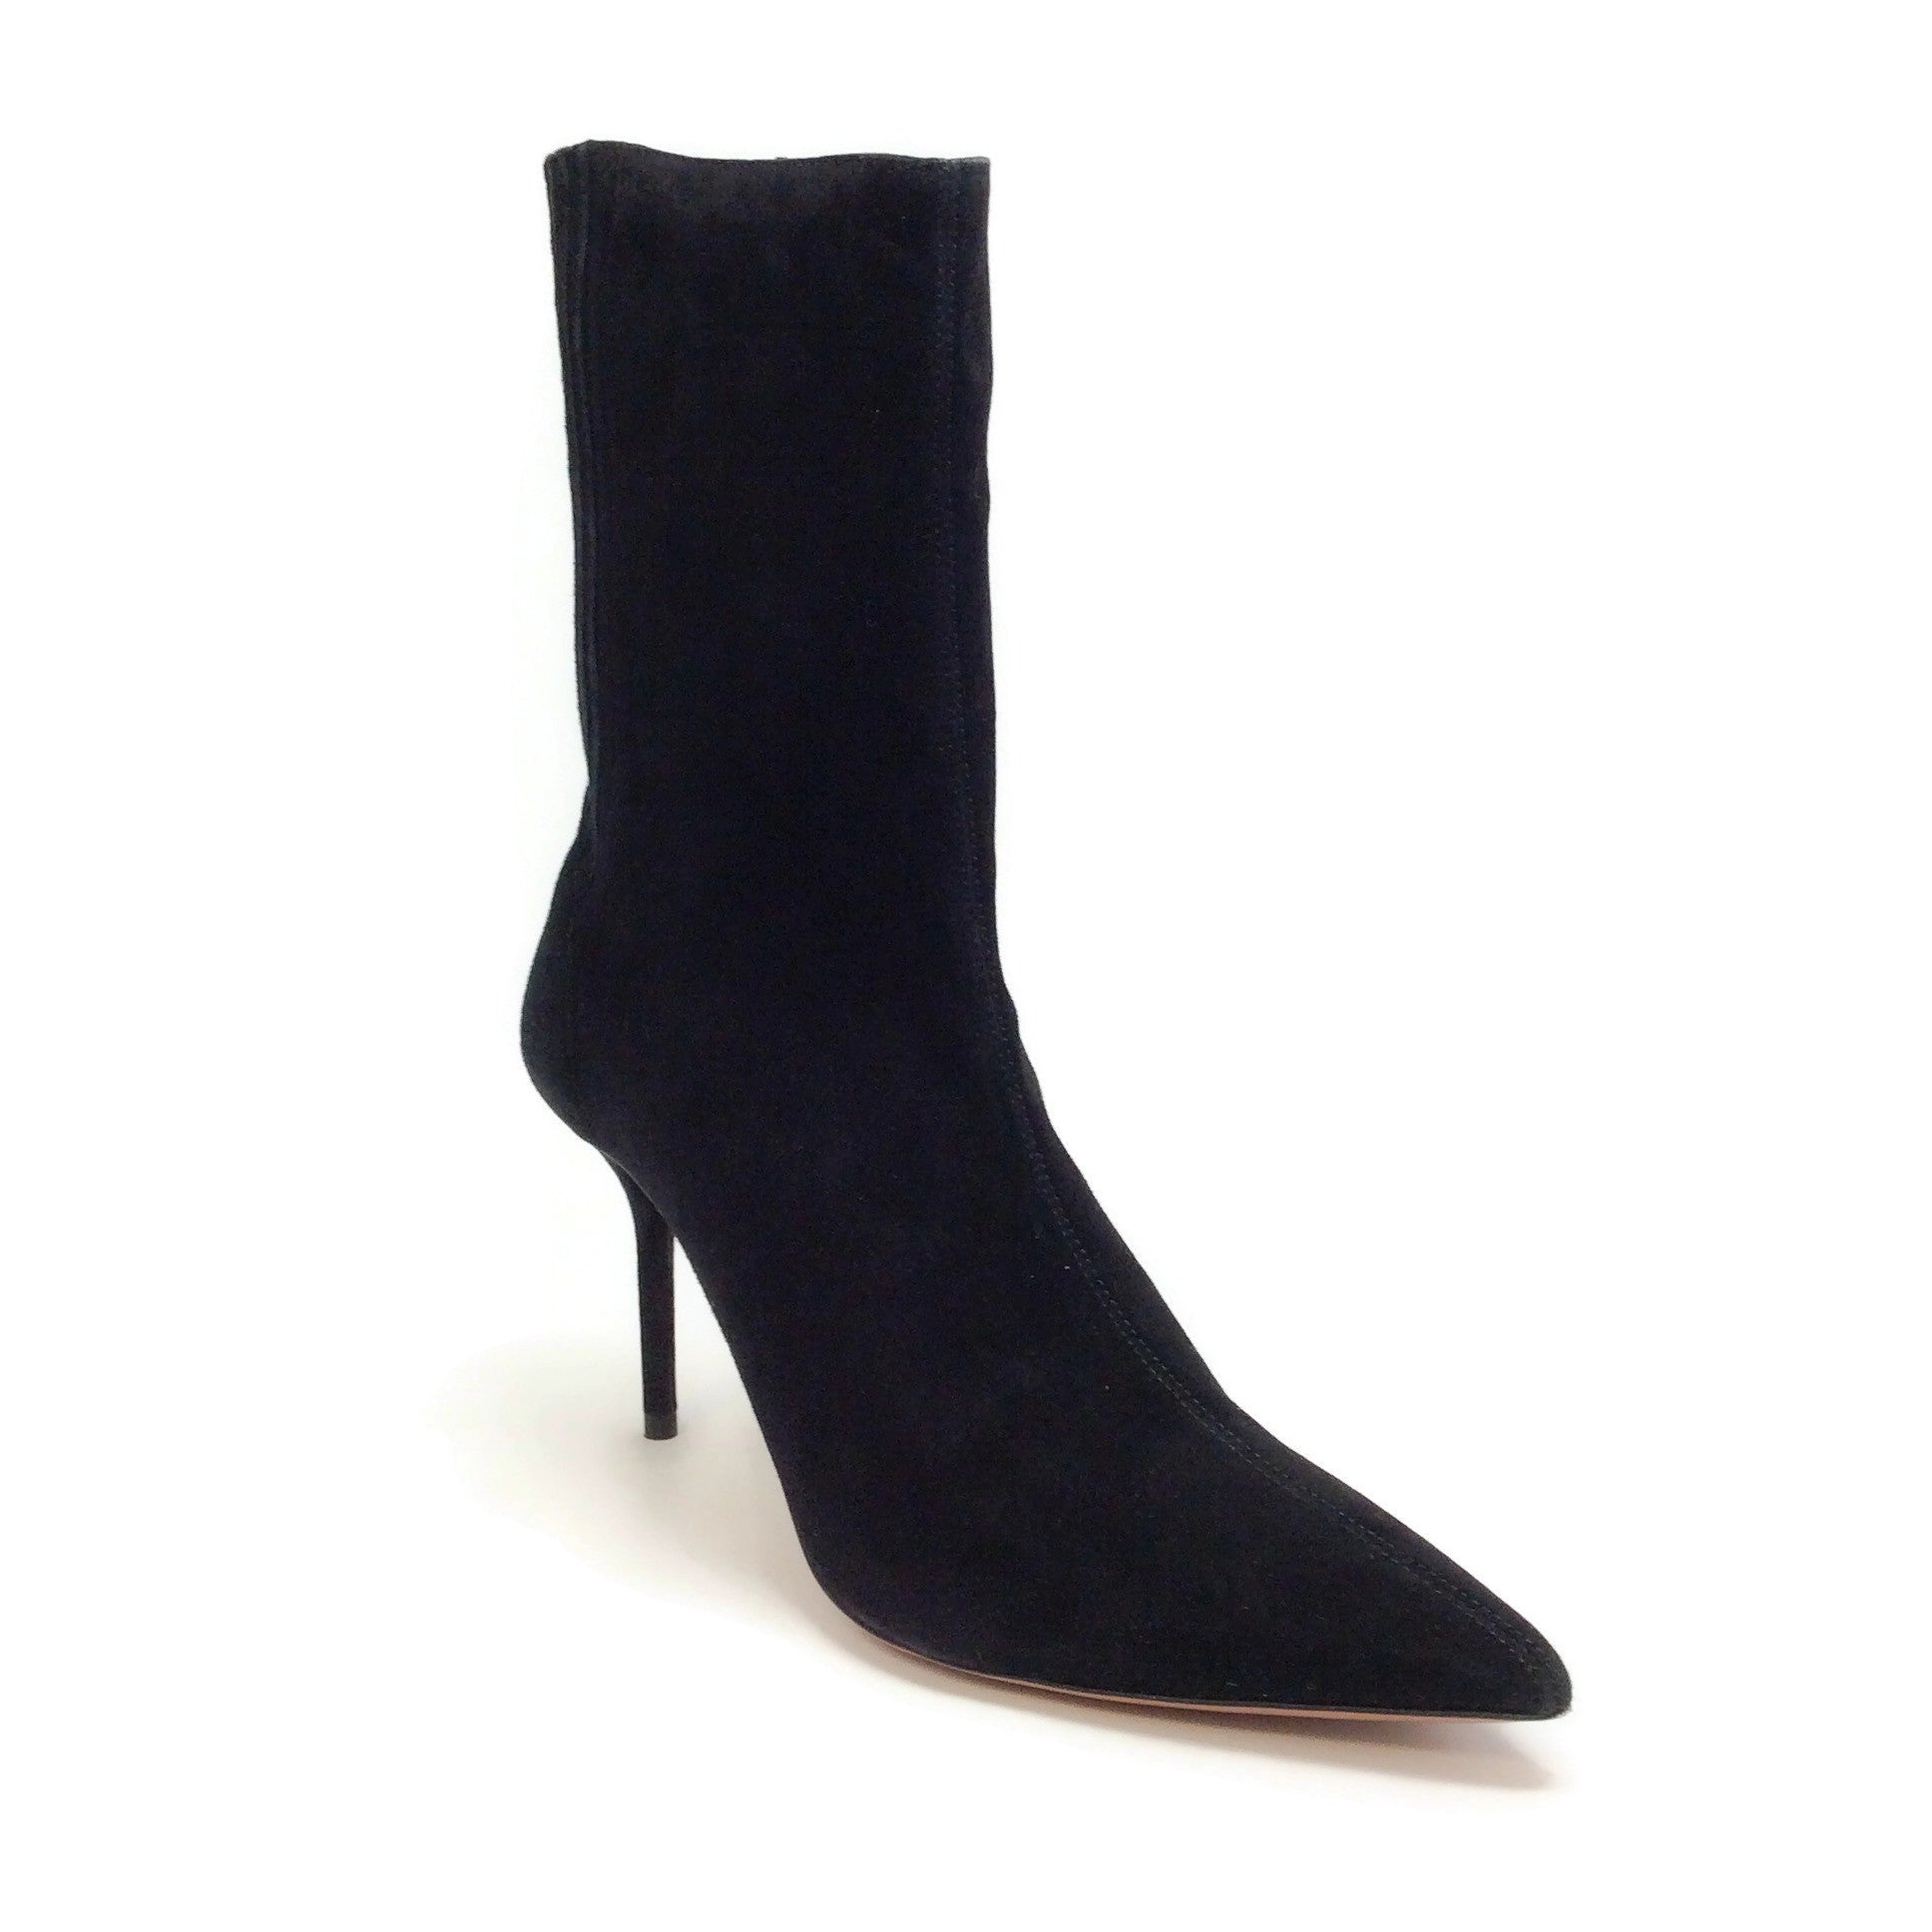 Aquazzura Black Suede Saint Honore 85 Boots